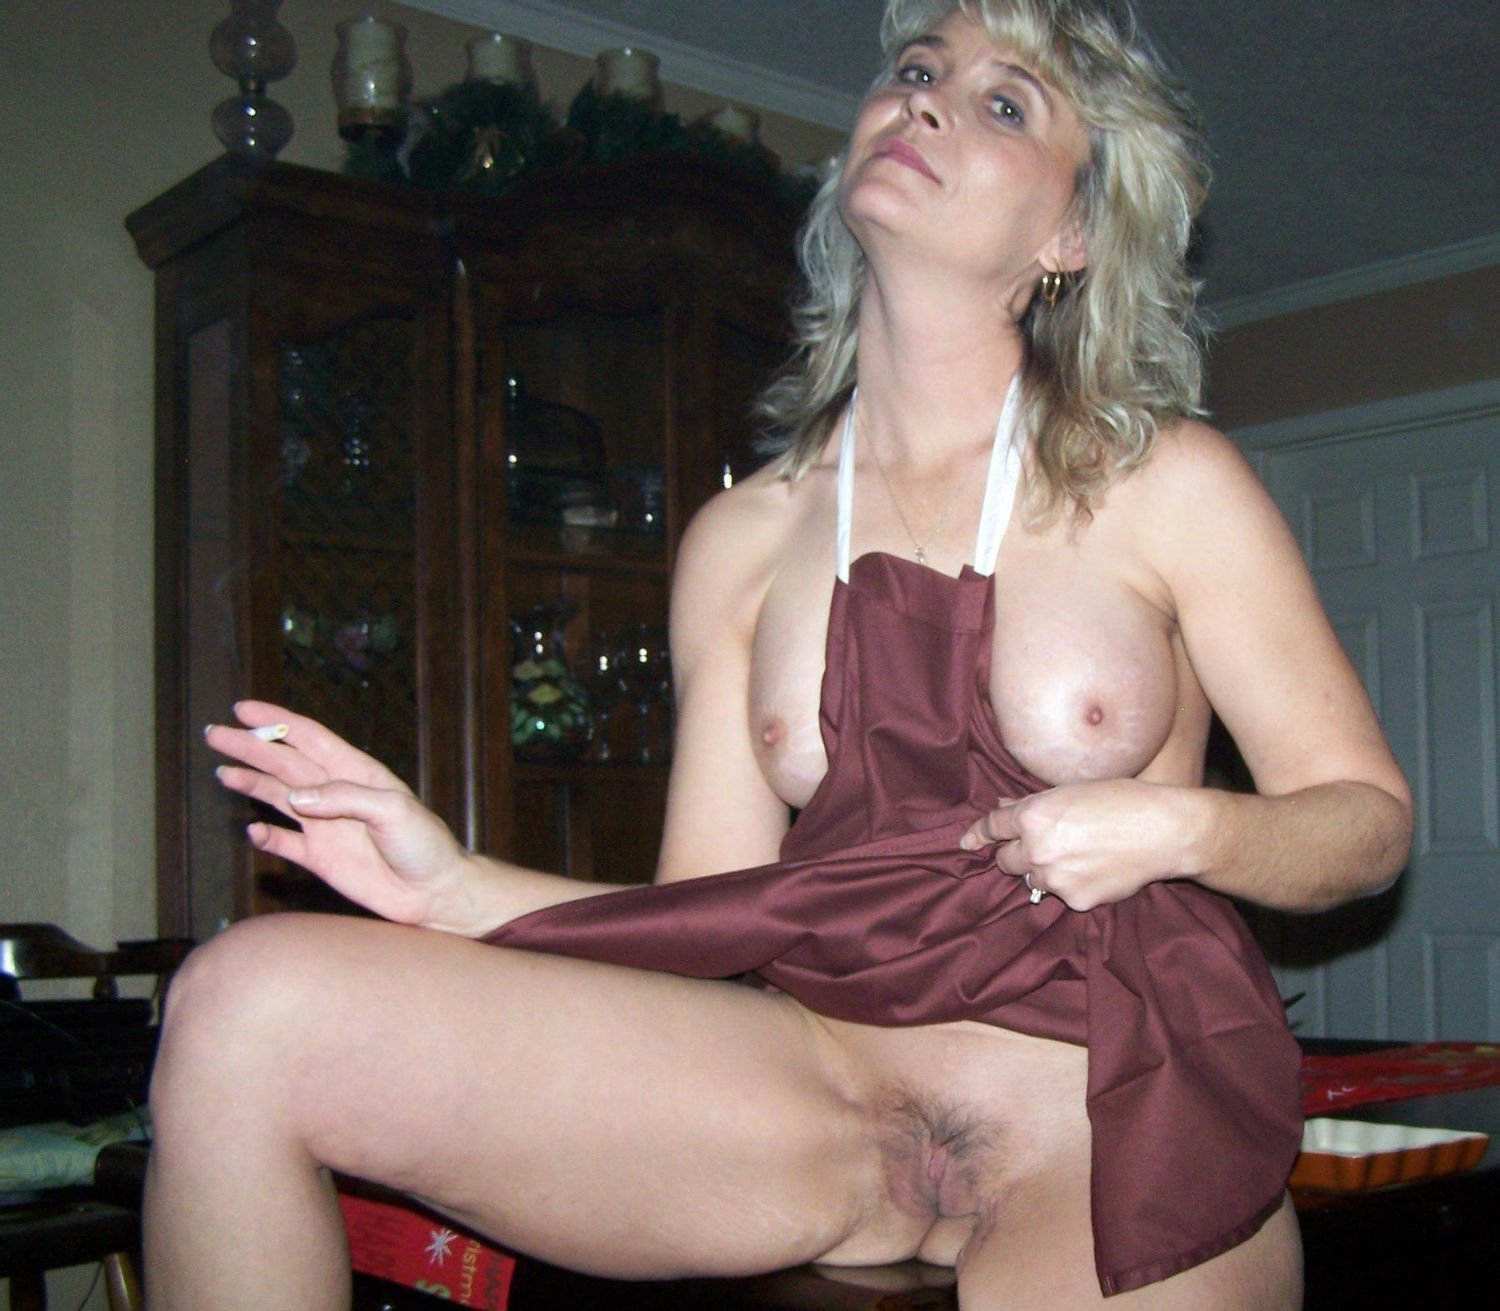 Amateur blonde mature displaying her boobs and pussy